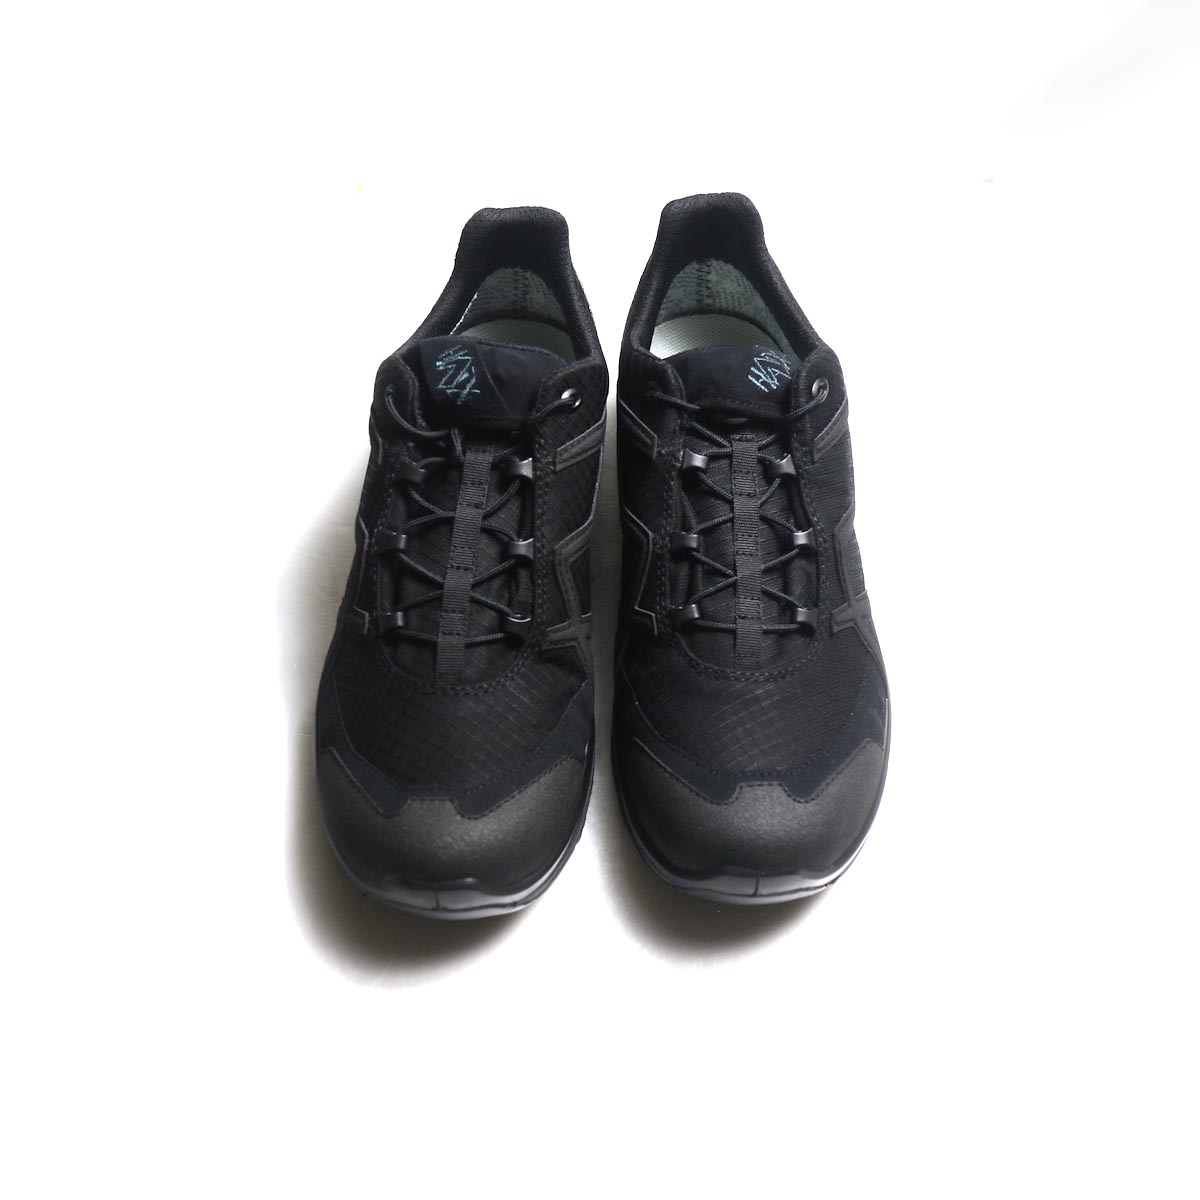 HAIX / BLACK EAGLE - ATHLETIC 2.1 GTX LOW (Black)正面